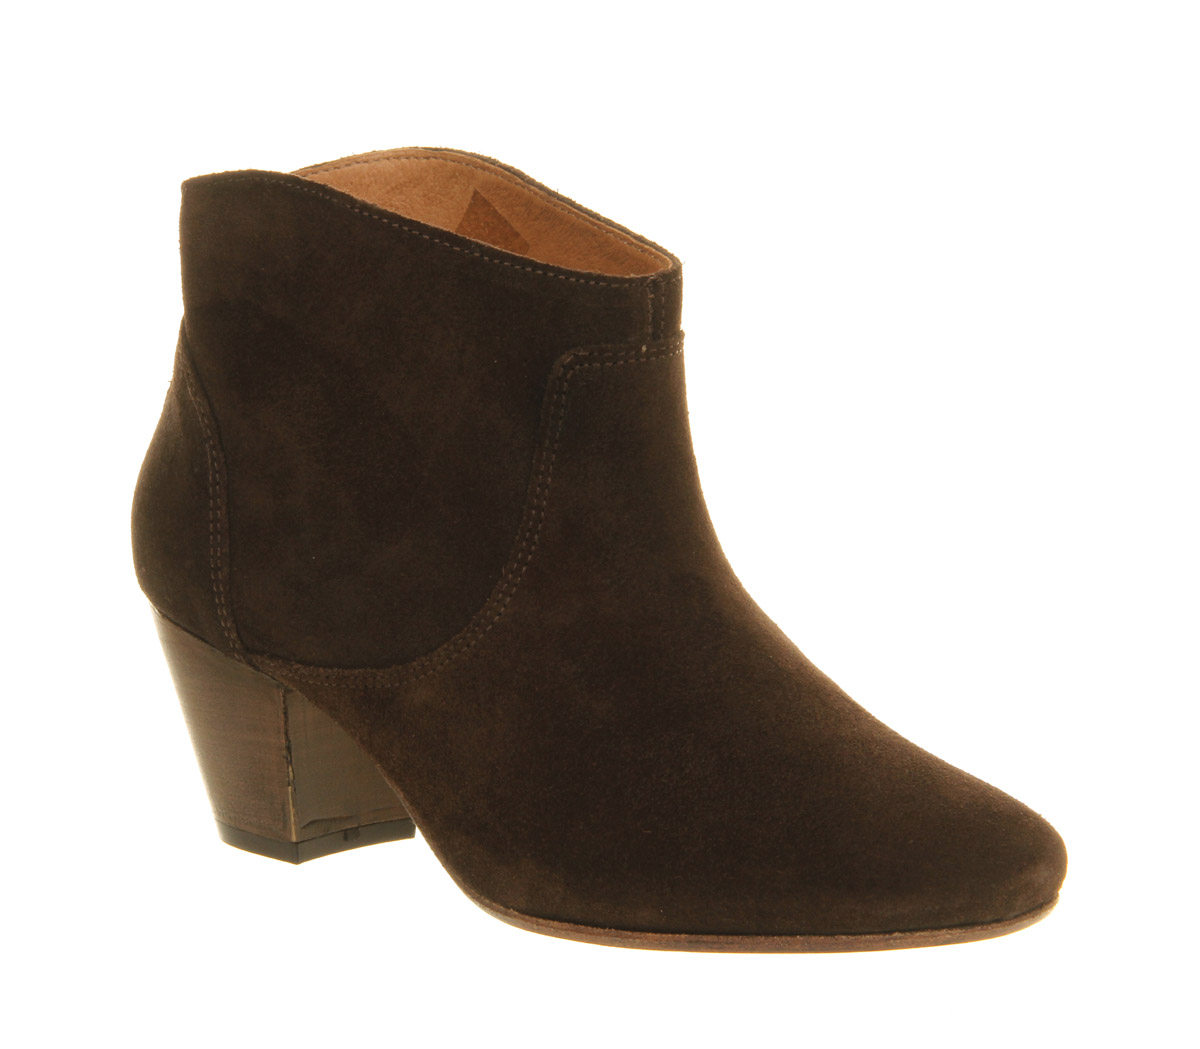 Browse HSN's wide selection of boots for women to find boots from top brands like Vince Camuto, Steve Madden, and more. Start shopping today. Women's Boots; Women's Boots. Page Filters Departments. Boots () Flats () Heels & Pumps () Sandals () Charles by Charles David Holly Leather or Suede Wedge Boot. Charles by Charles.